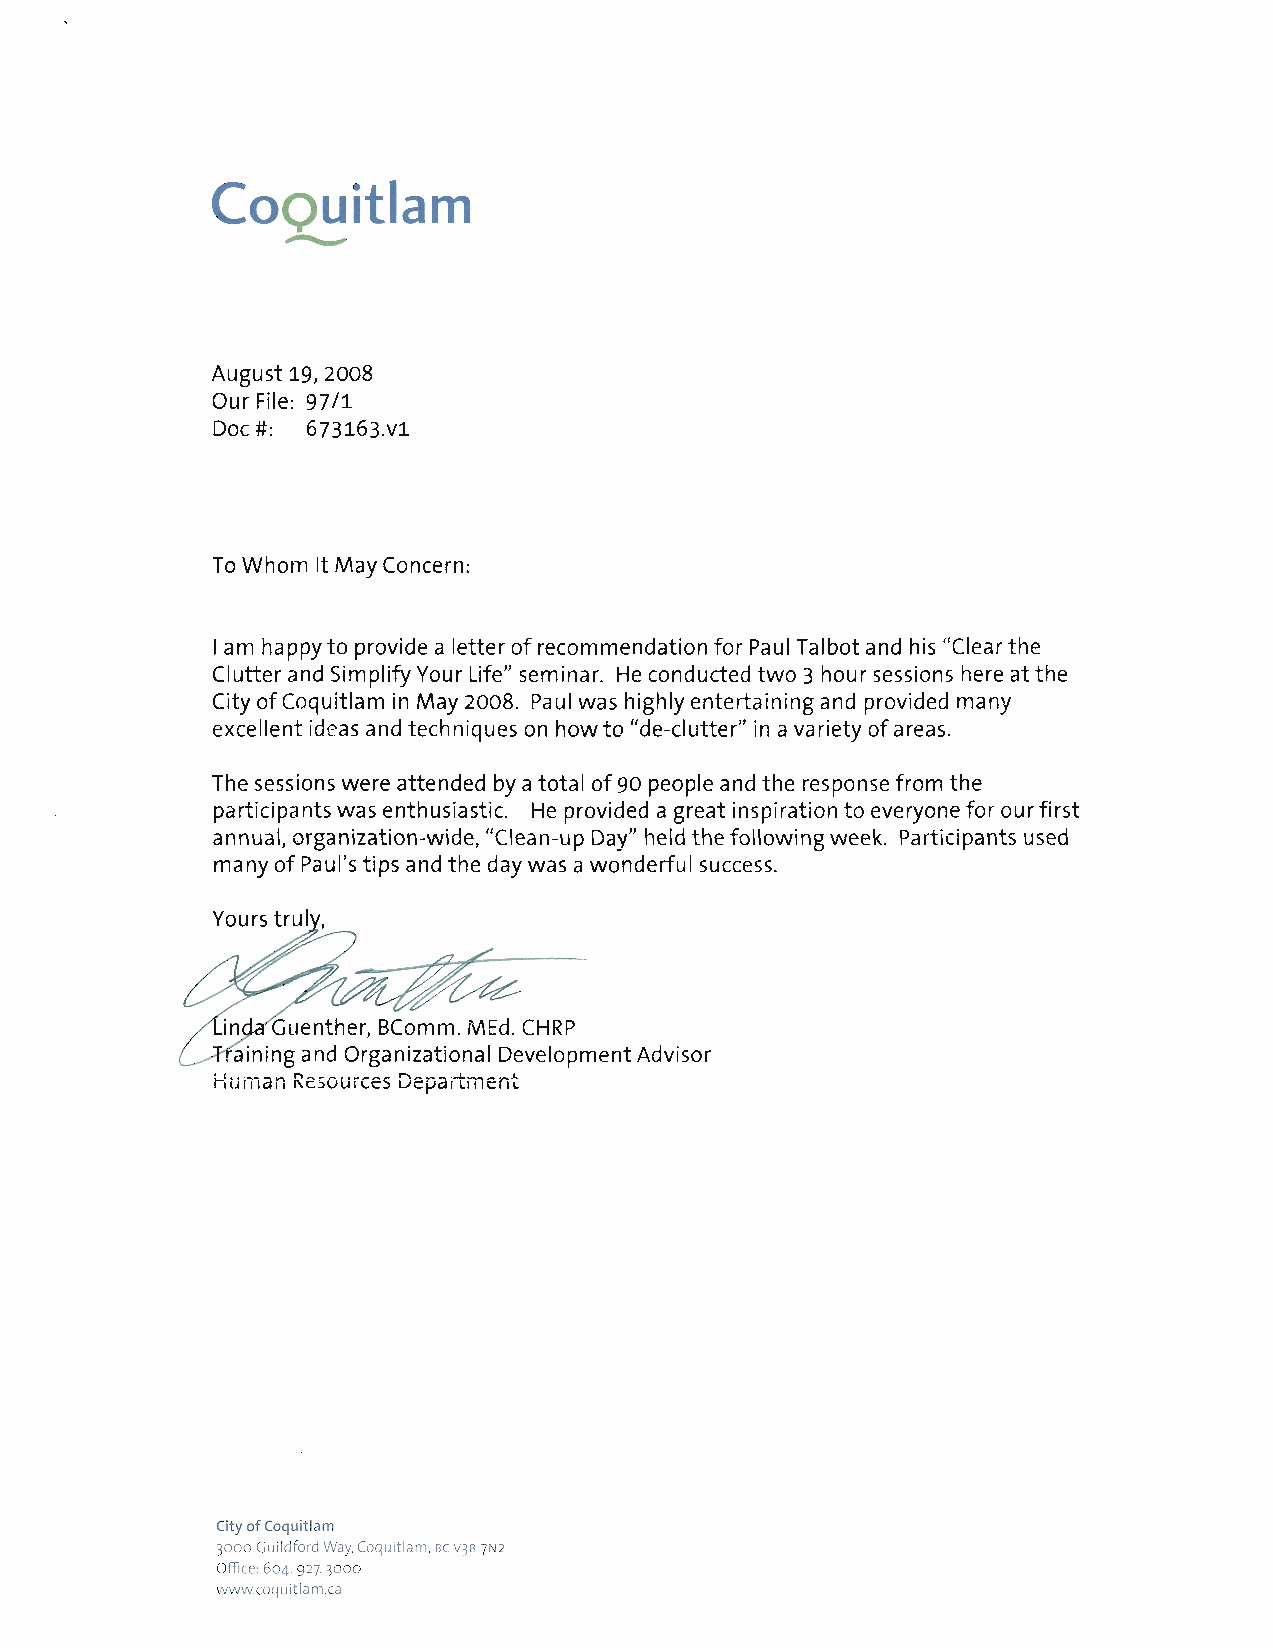 Health Care Letter Of Recommendation Luxury Re Mendation Letter for Secretary Best Template Collection